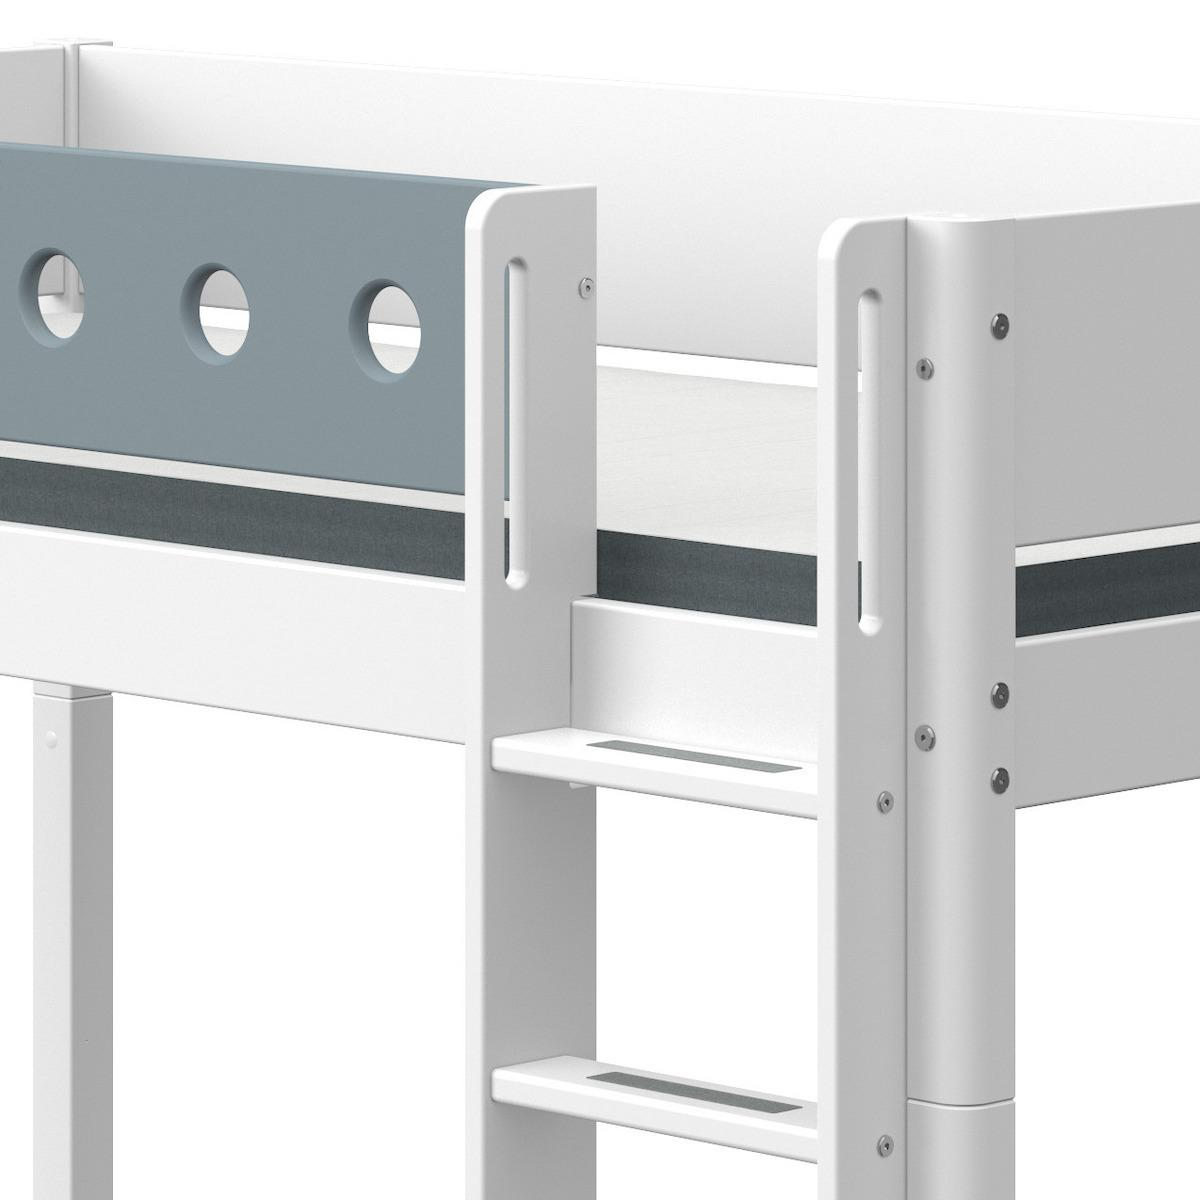 Cama media alta 90x200cm escalera recta WHITE Flexa blanco-azul claro